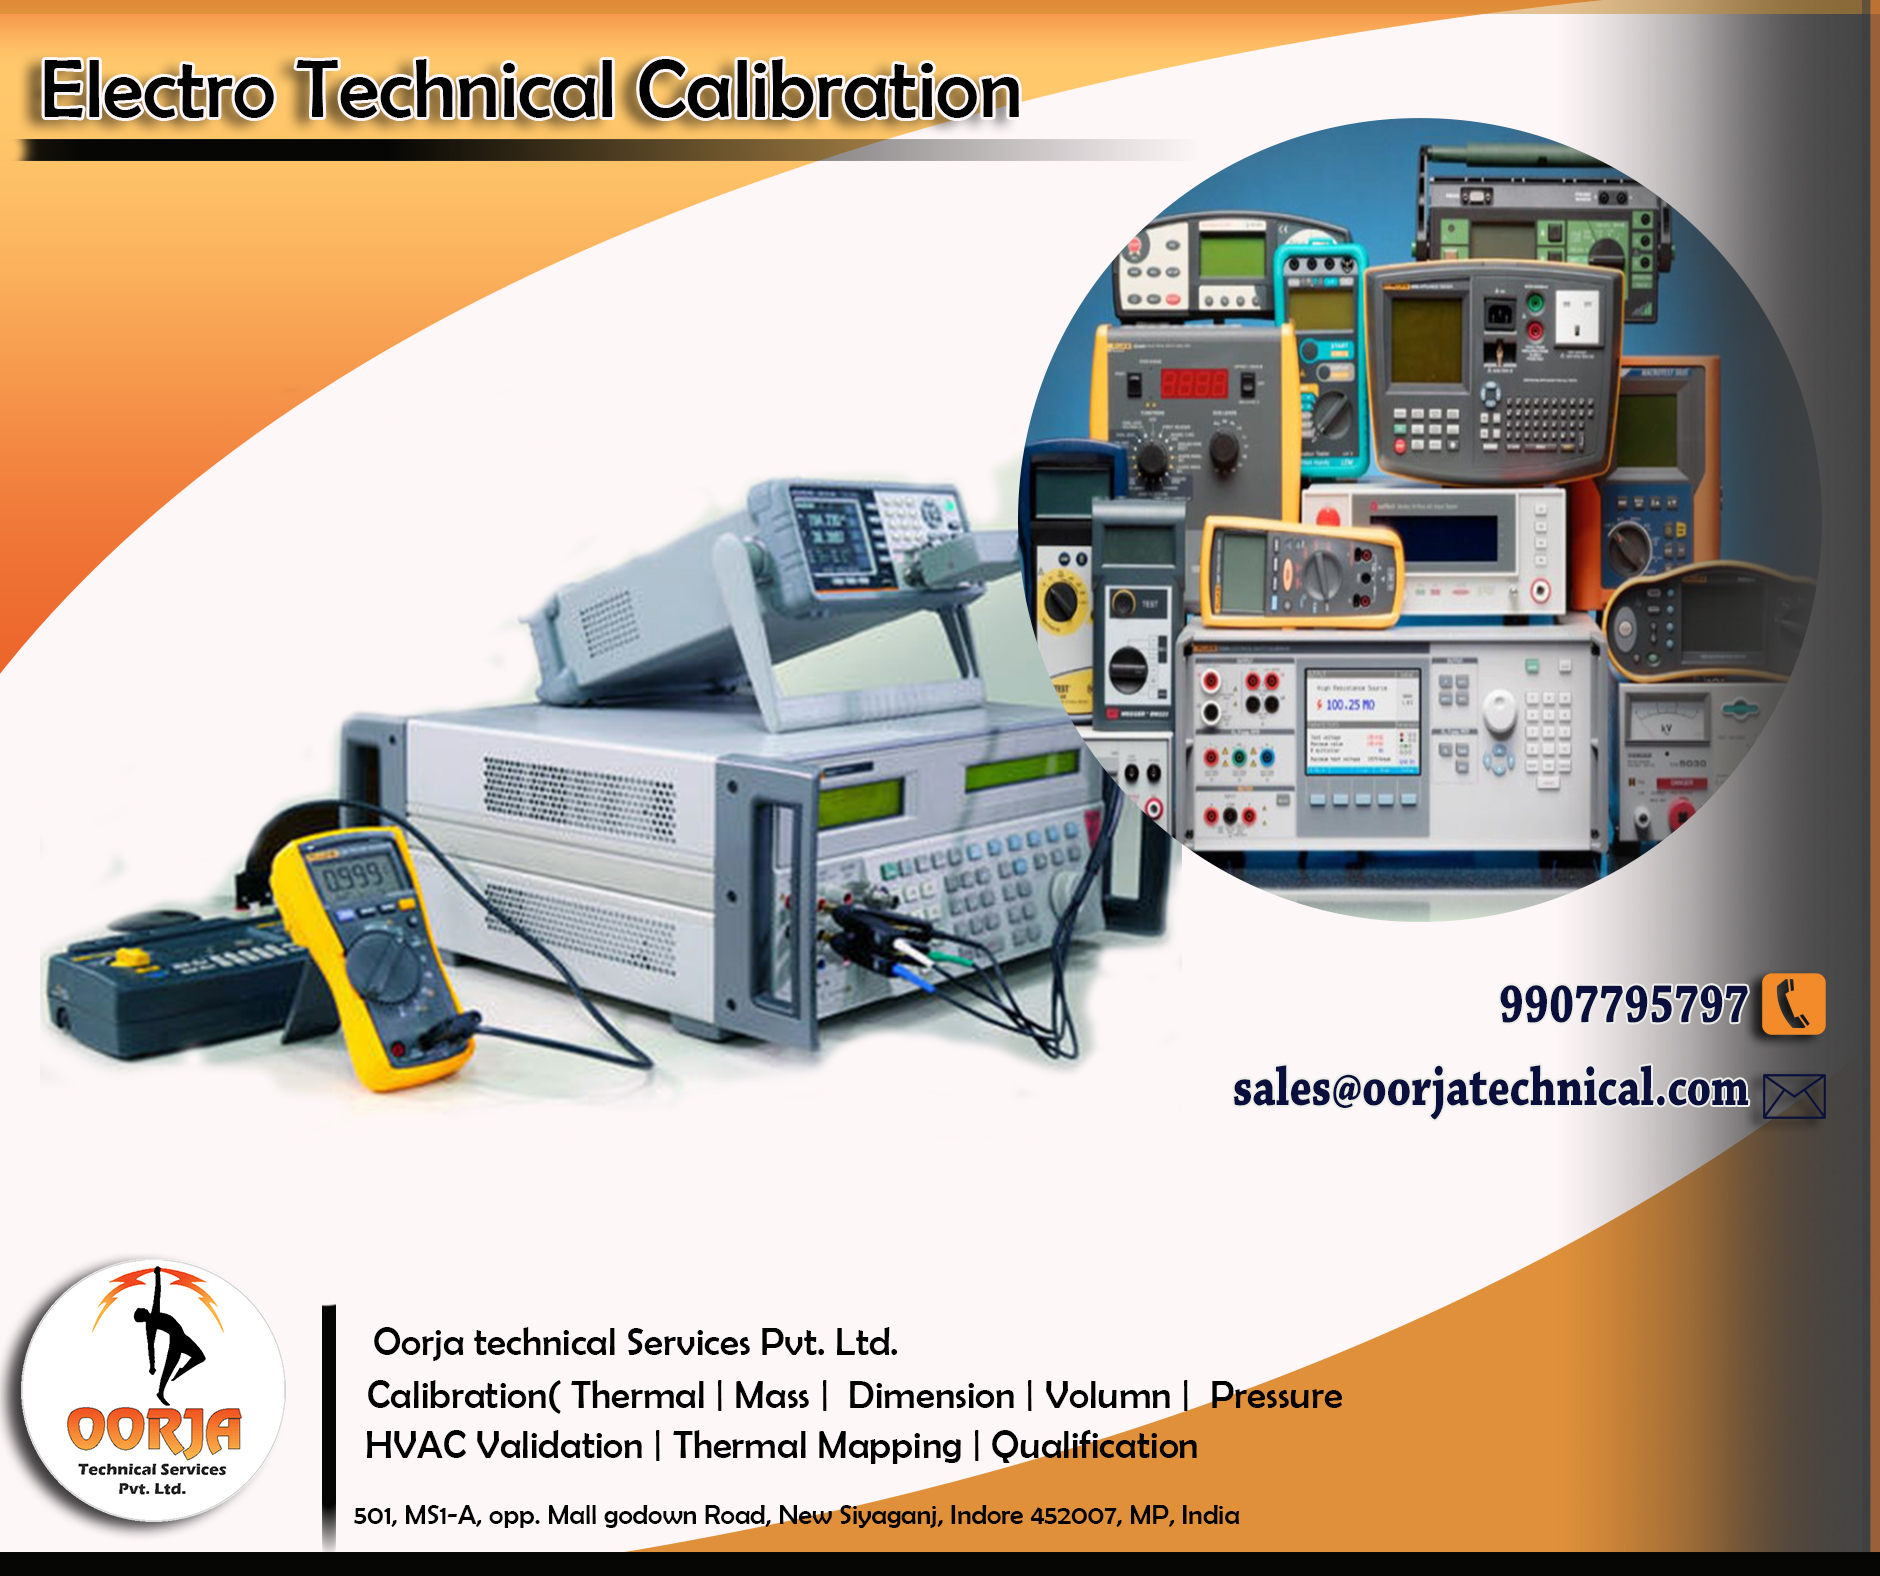 Electrotechnical Calibration